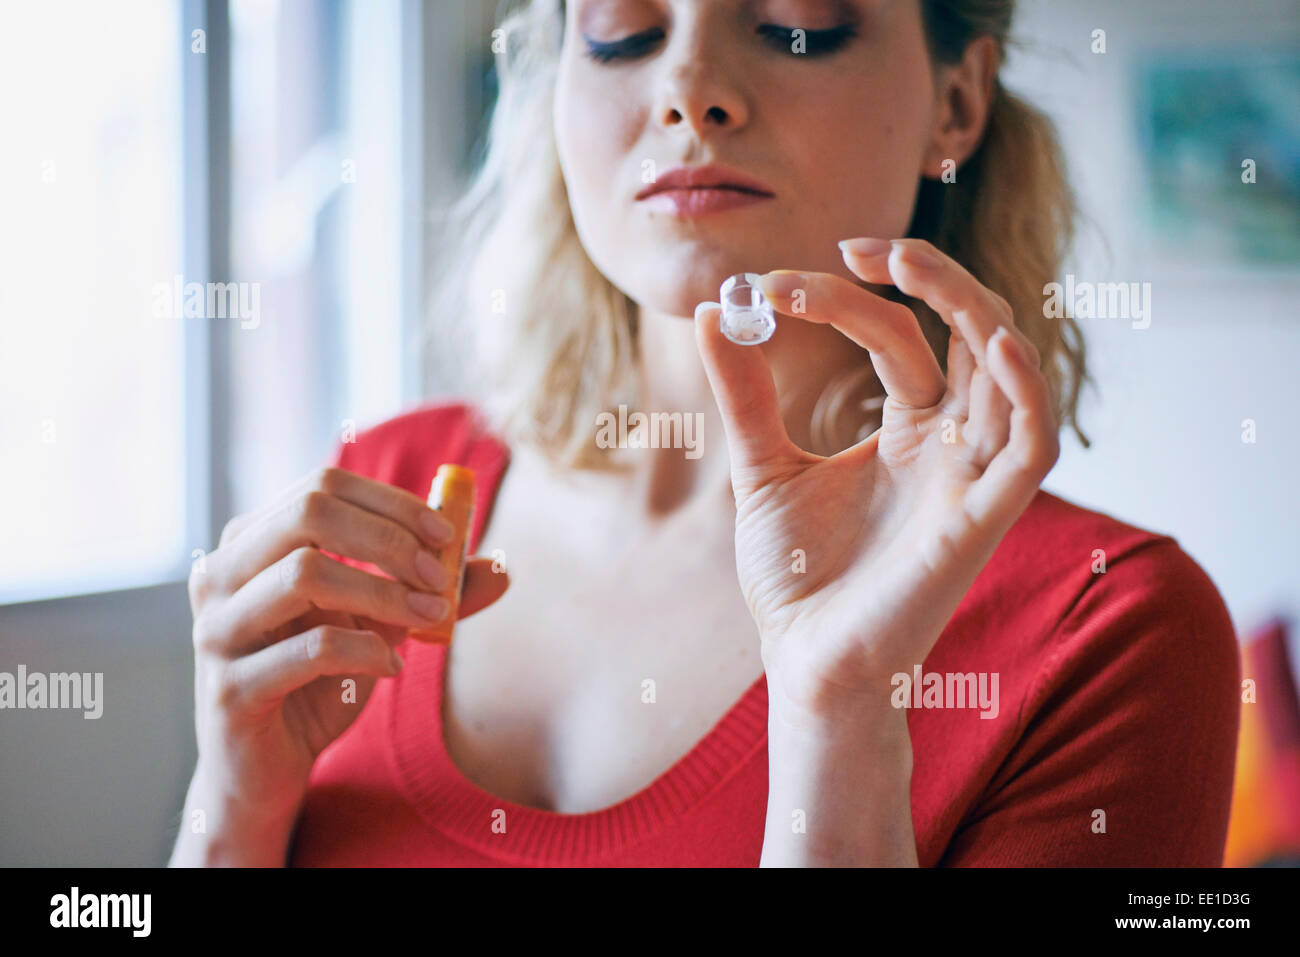 HOMEOPATHY, WOMAN - Stock Image